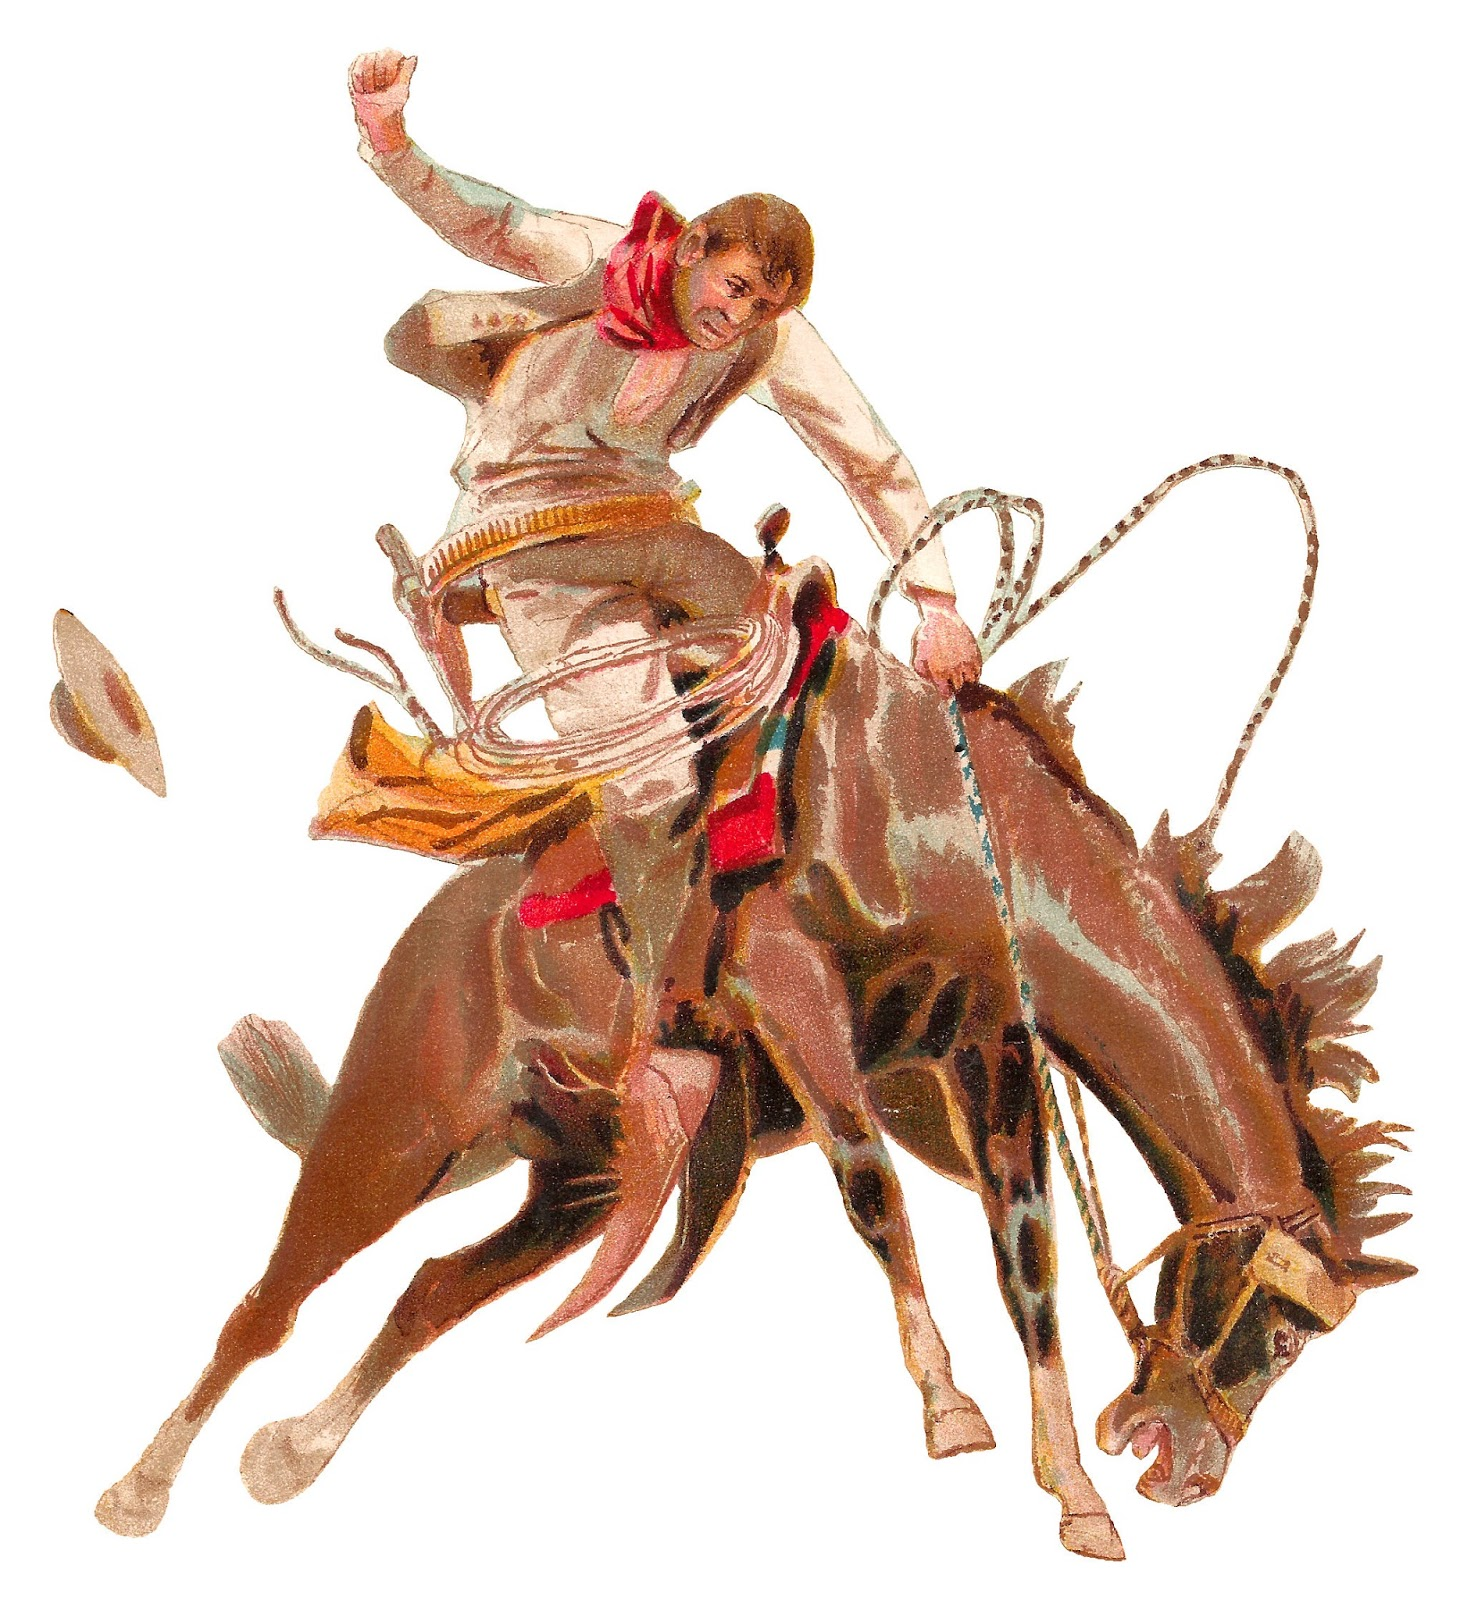 Native American clipart wild wild west Slinger Western Clip Native Images: